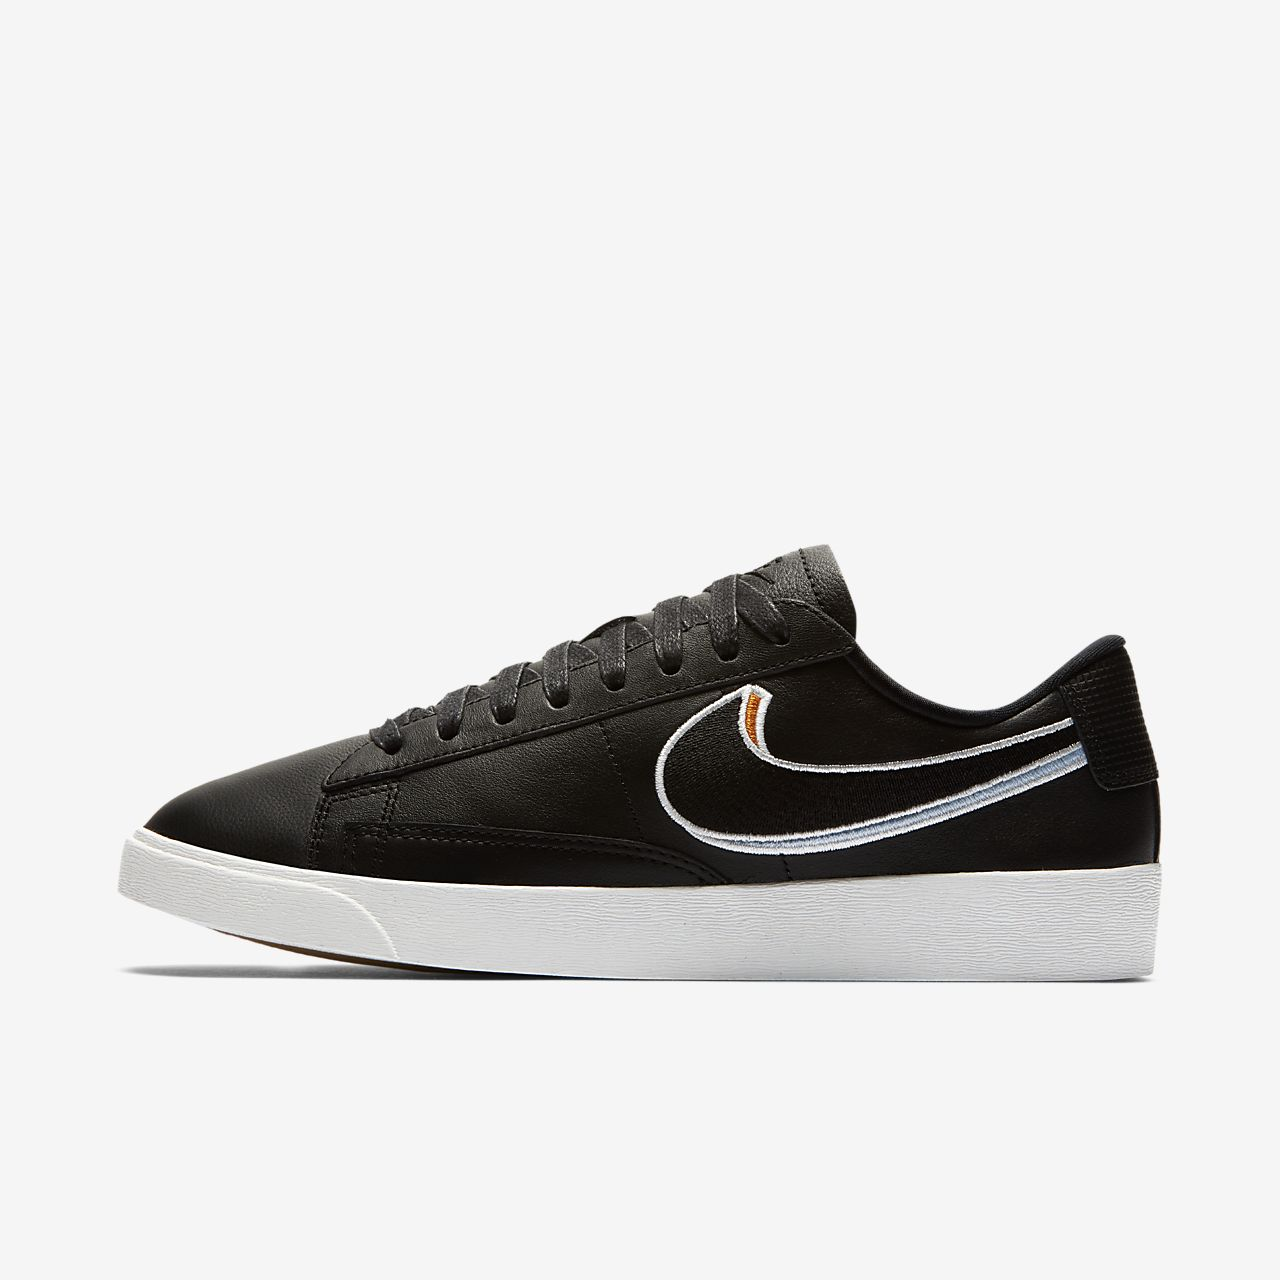 405c9d30f6cd Nike Blazer Low LX Women s Shoe. Nike.com